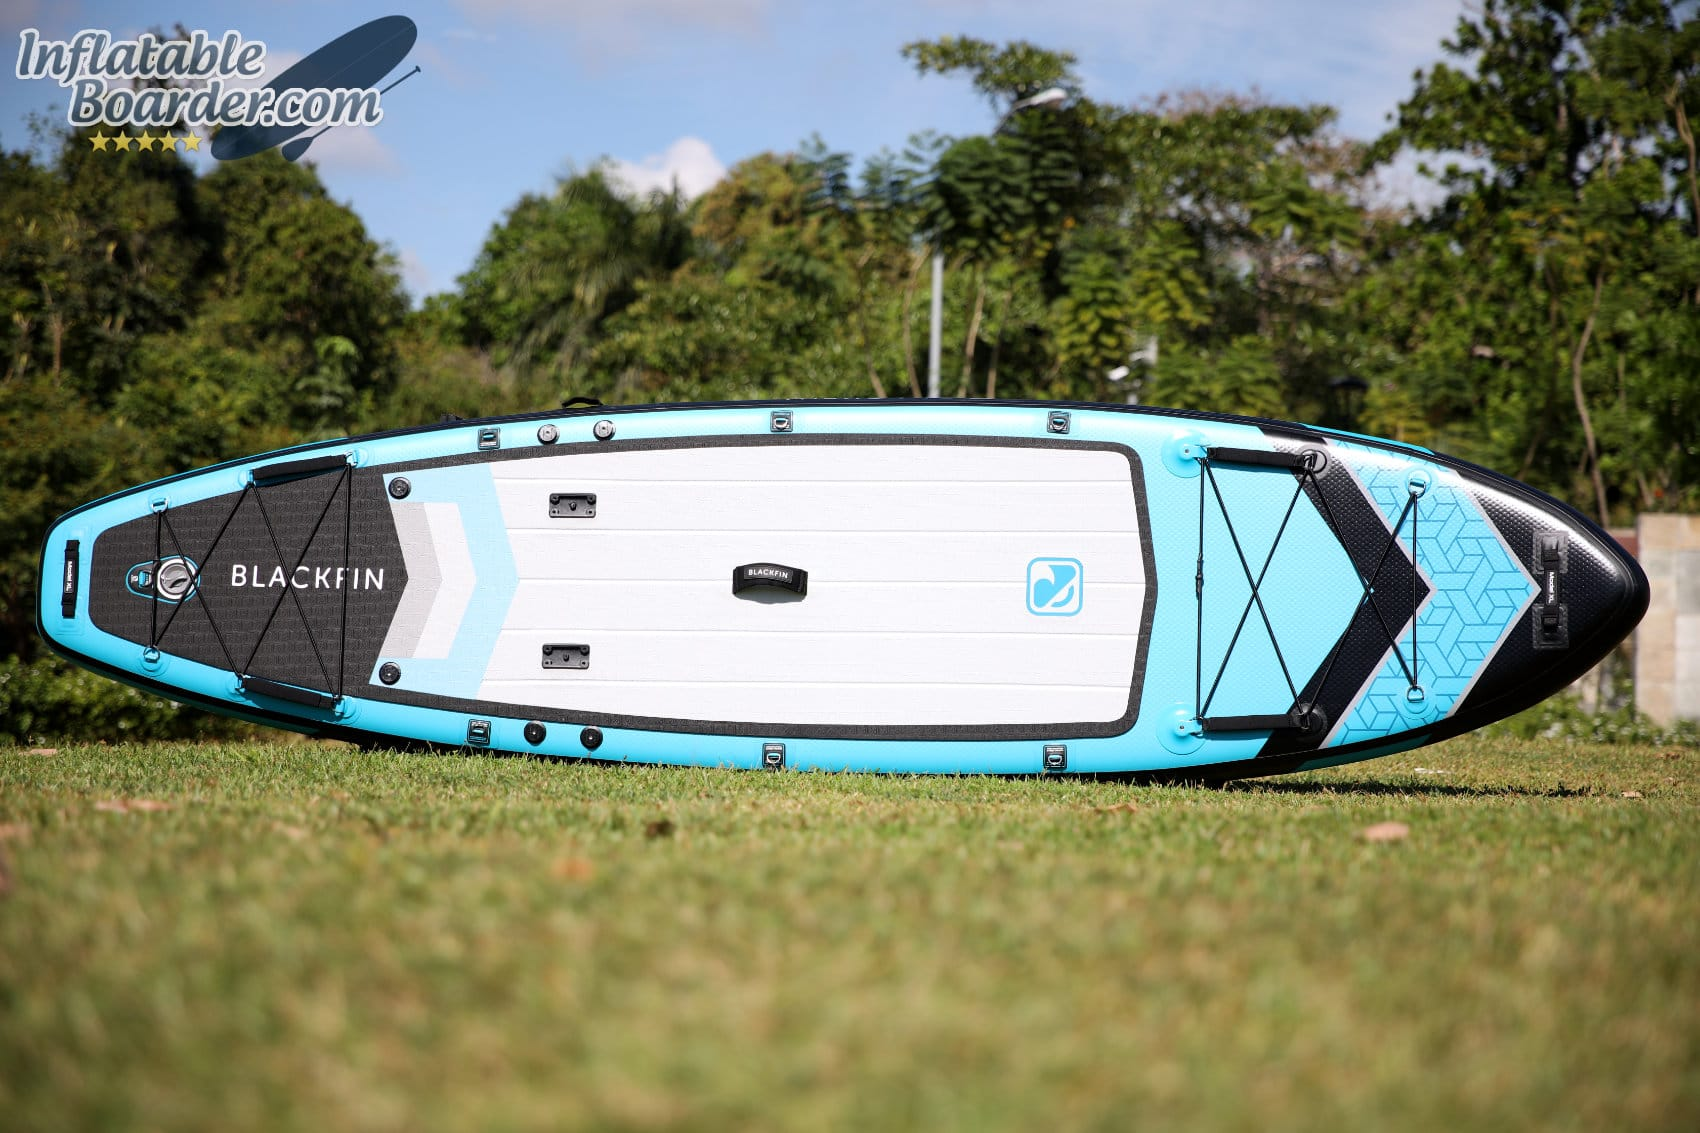 BLACKFIN Model XL SUP